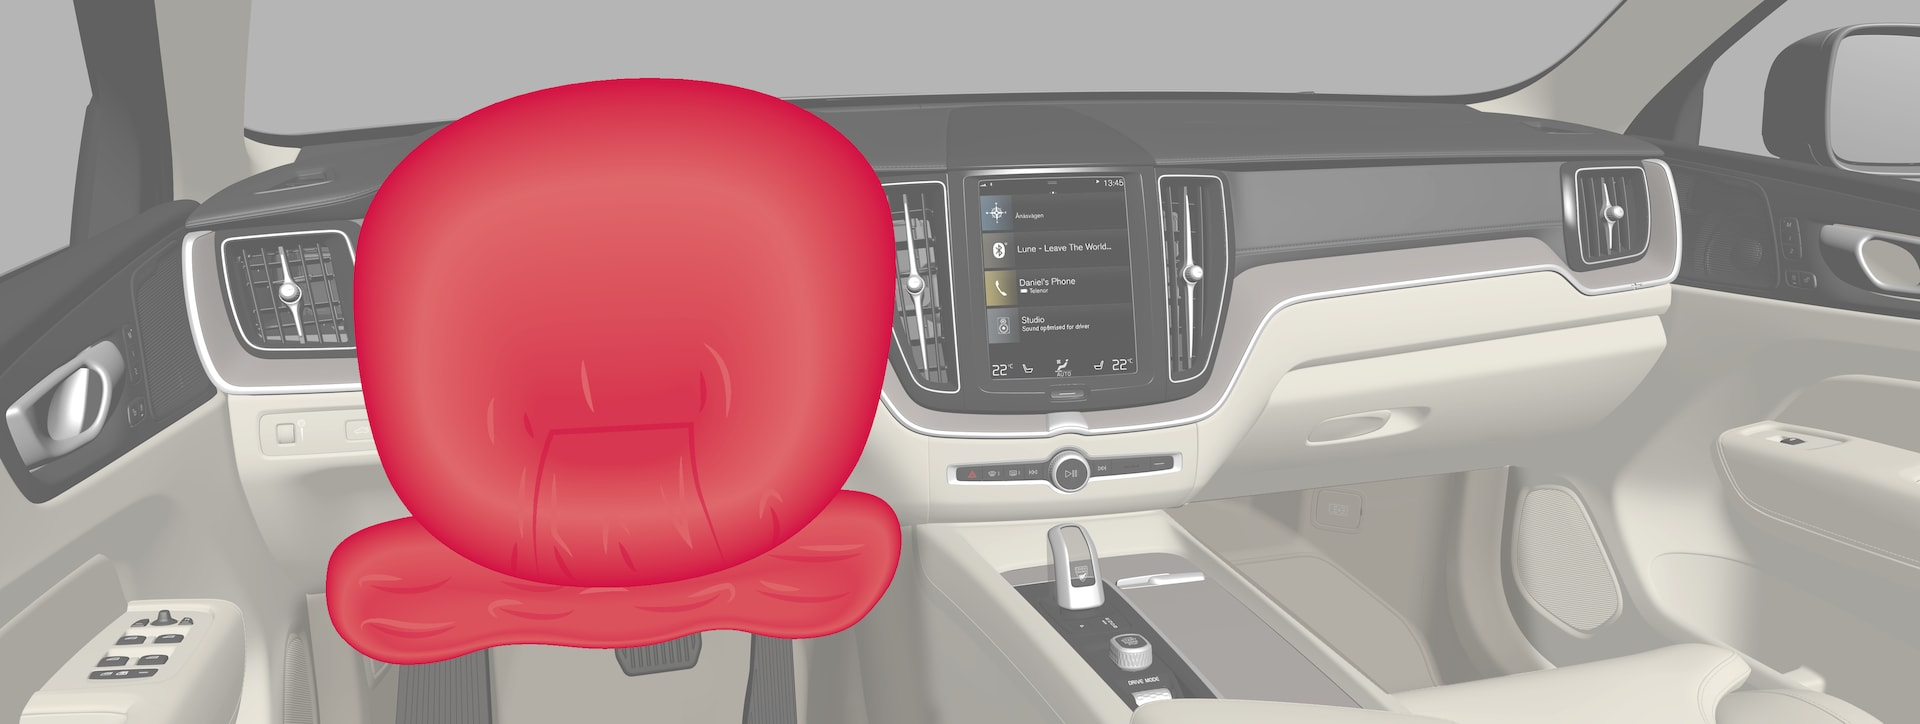 P5-1746-XC60–Safety–Driver airbags